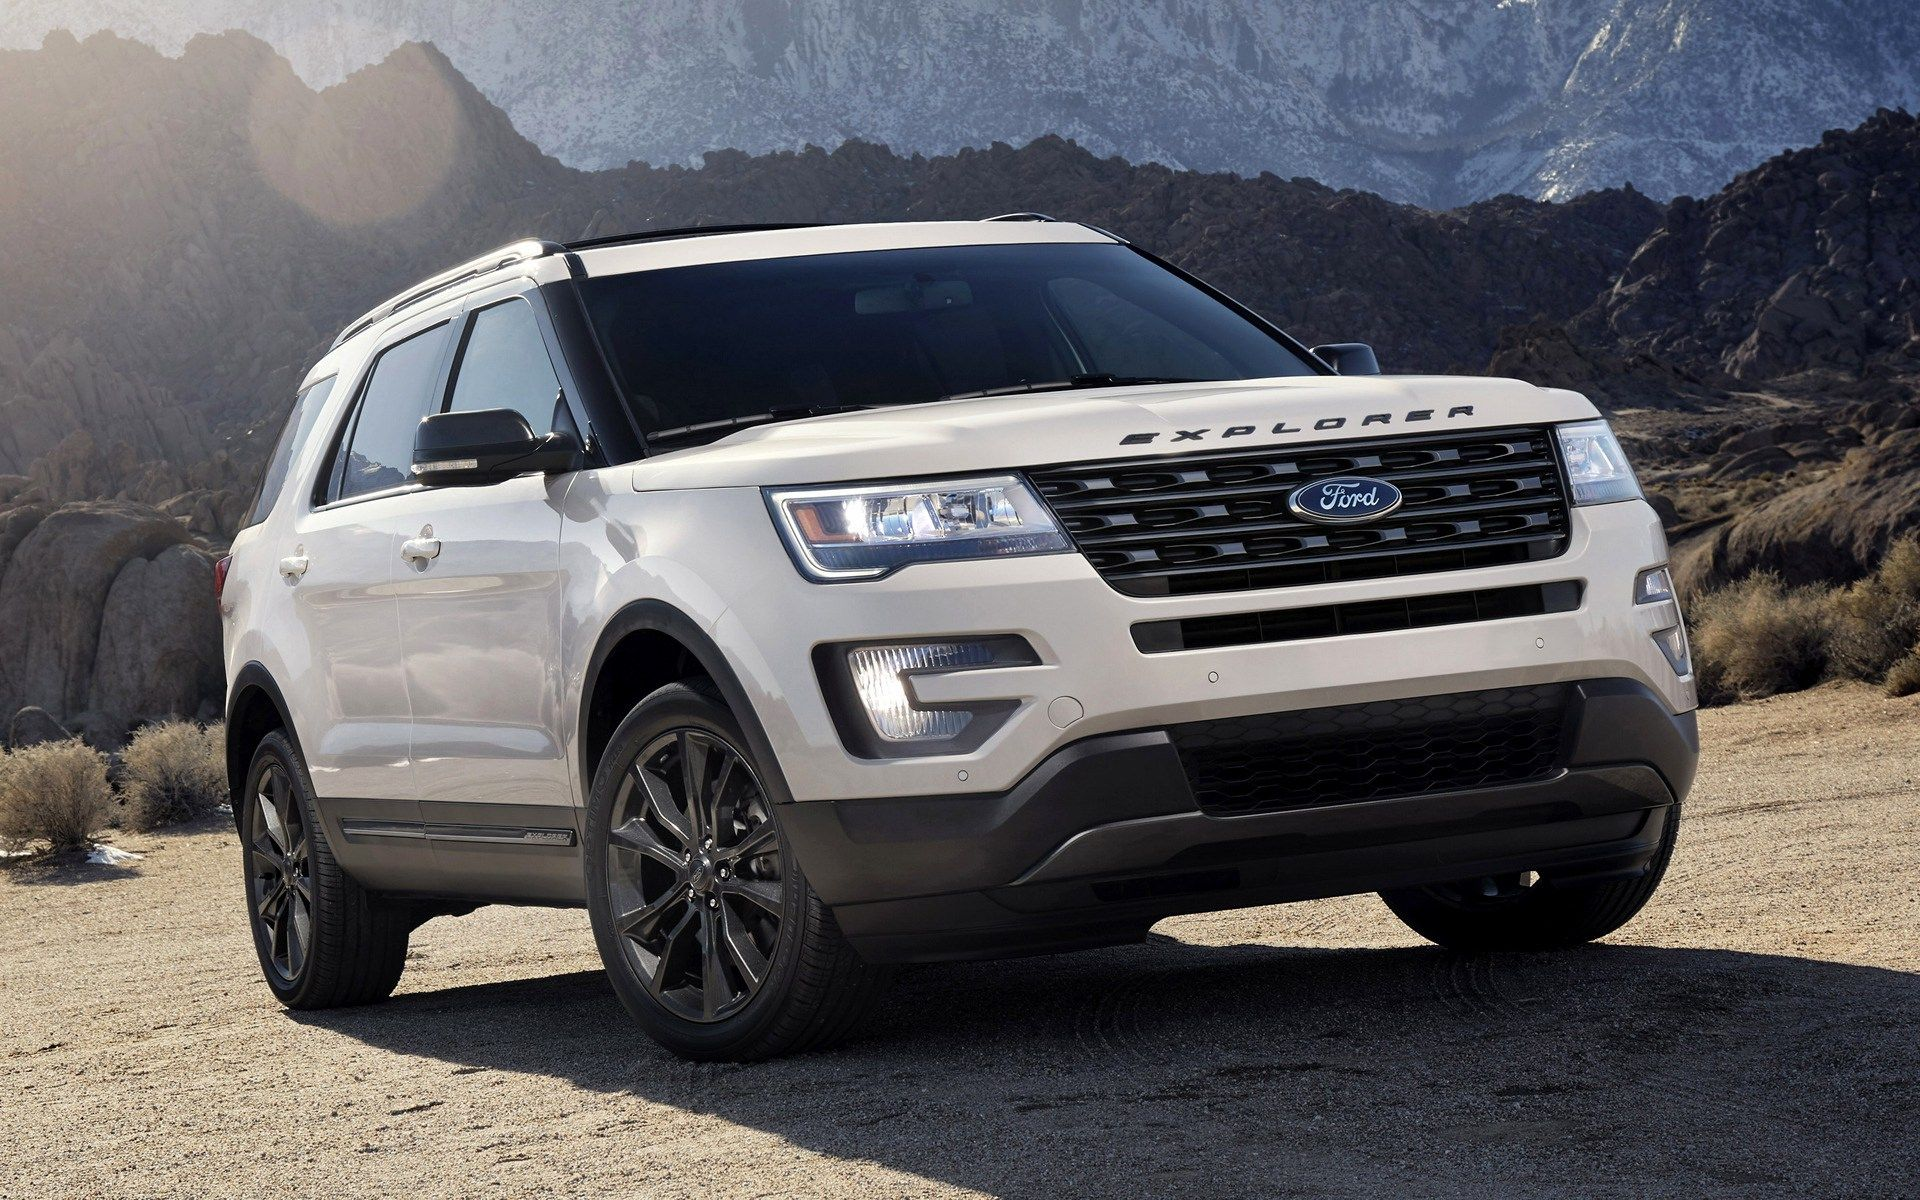 2020 Ford Explorer Rumors Review And Changes Ford Cars News 2019 Ford Explorer Ford Explorer Ford Explorer Sport